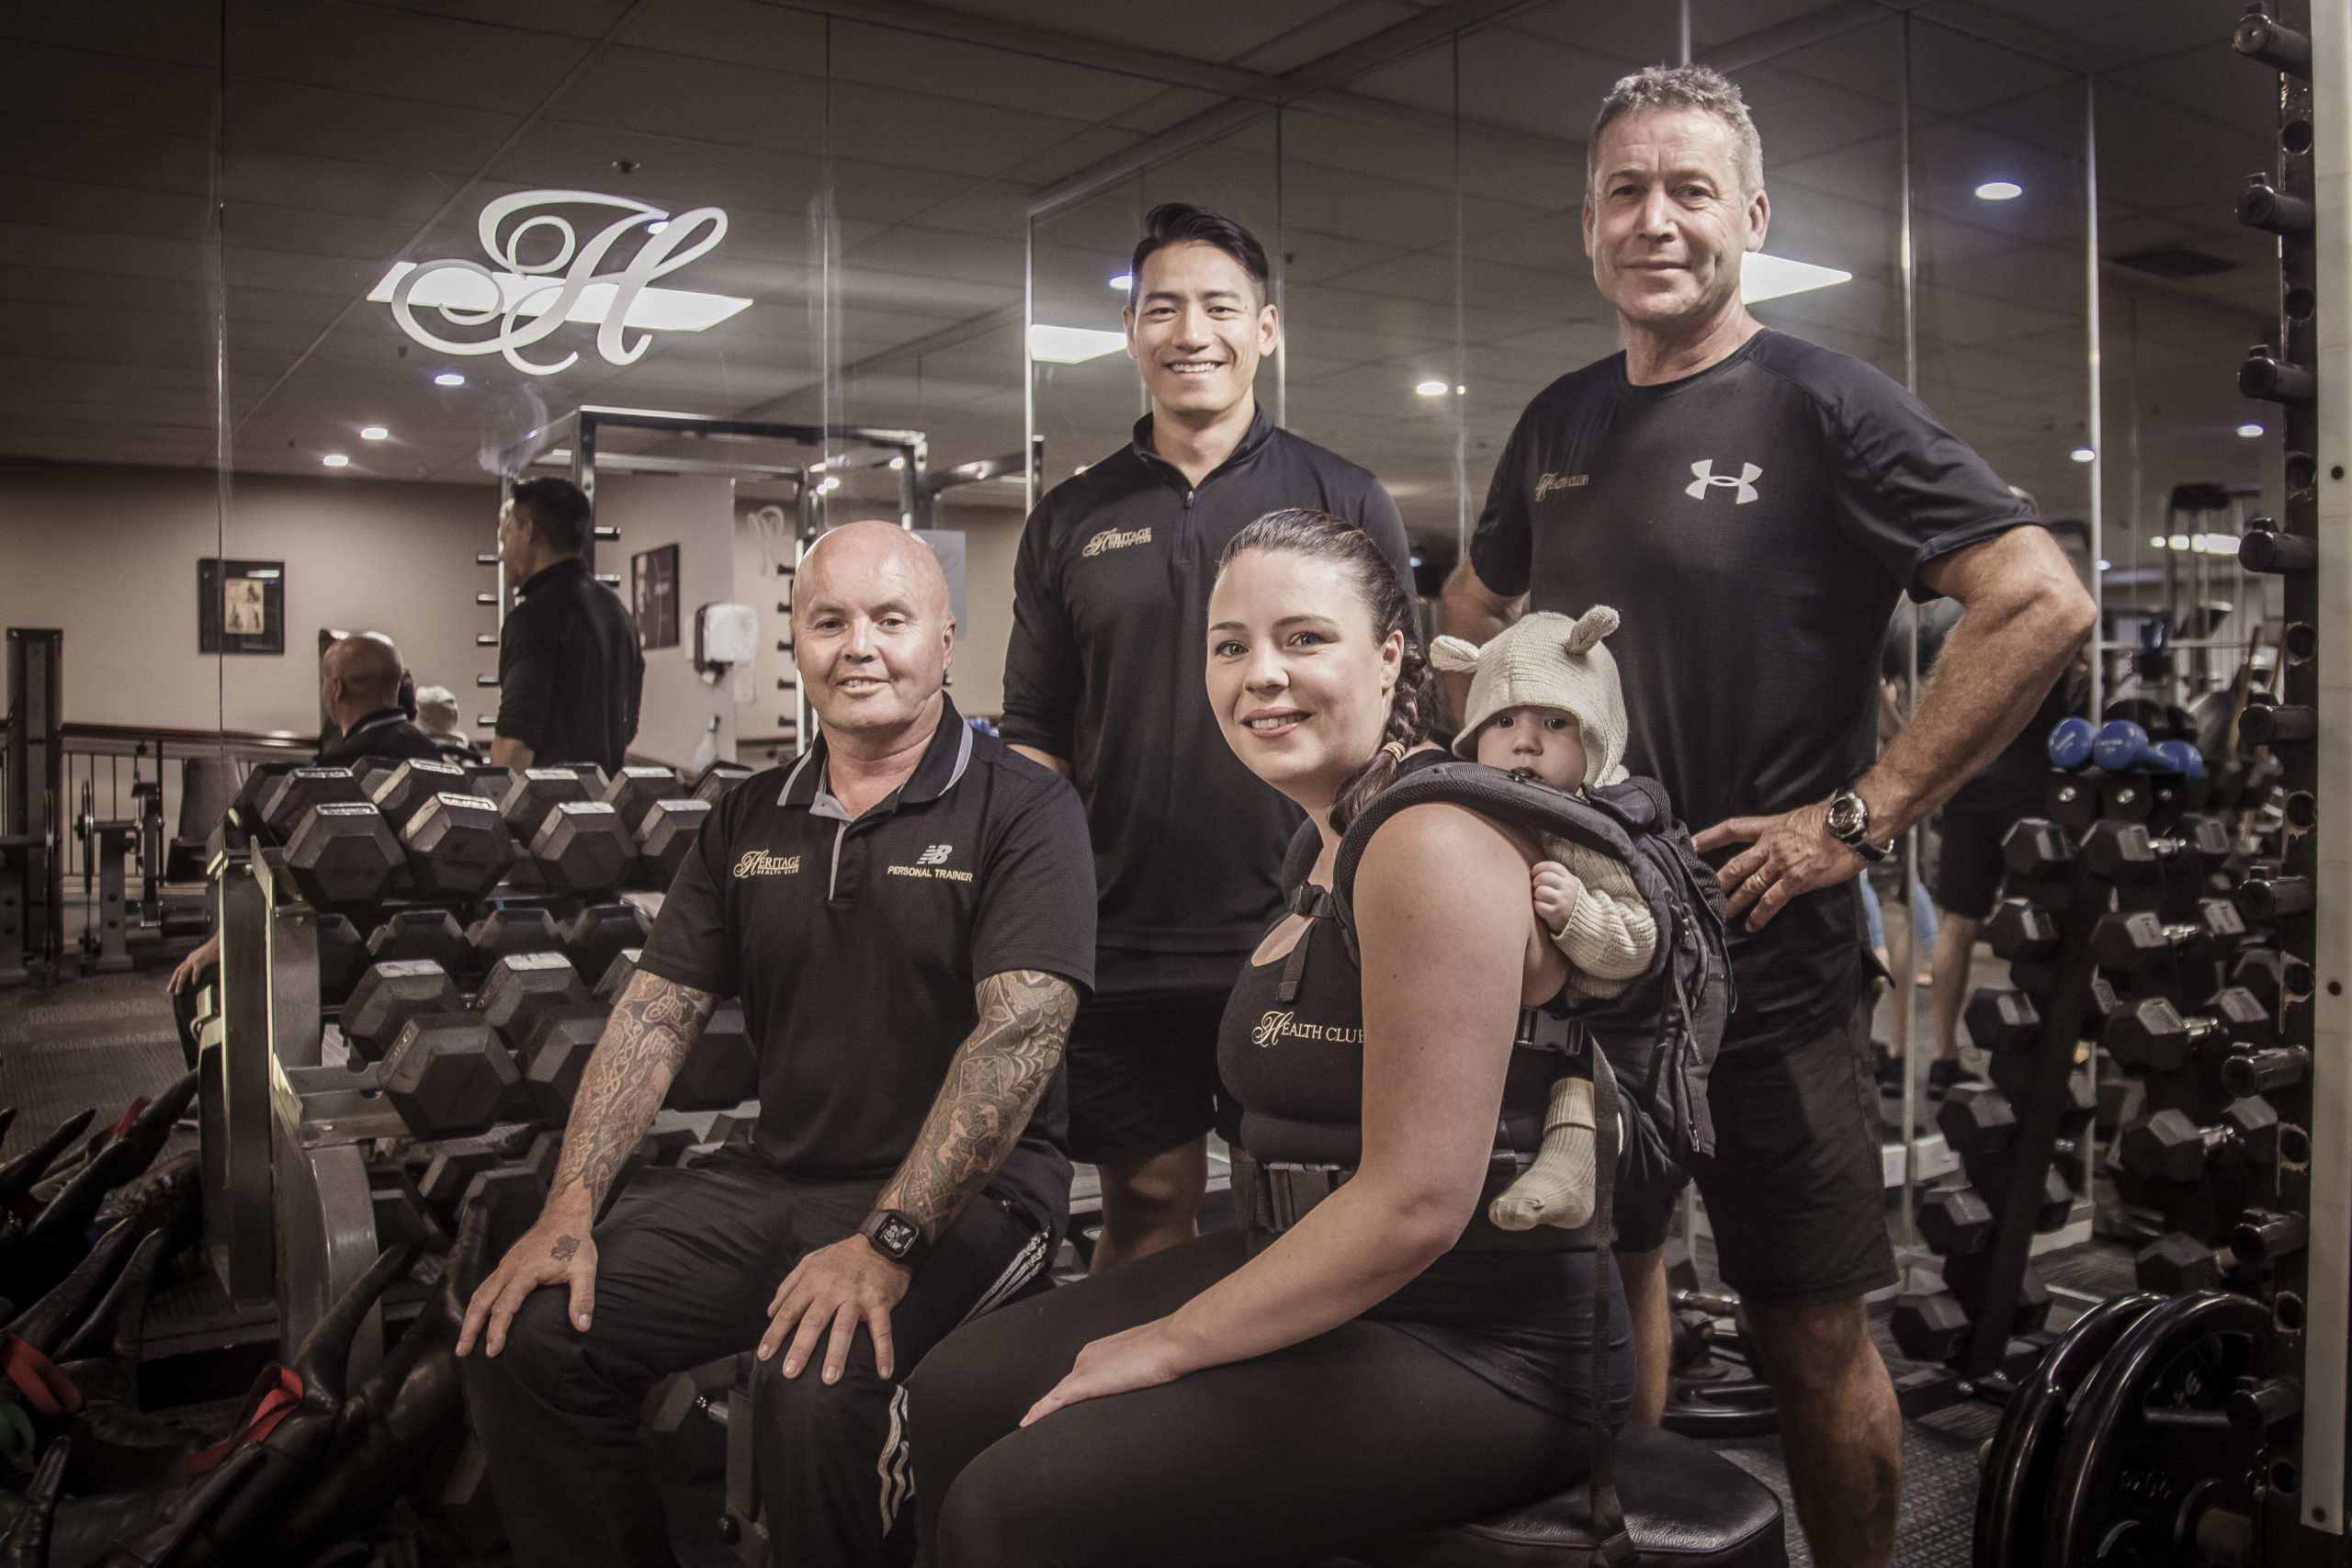 CHRISTCHURCH PERSONAL TRAINERS HELP YOU ACHIEVE YOUR HEALTH & FITNESS GOALS & ARE WITH YOU FOR EVERY STEP